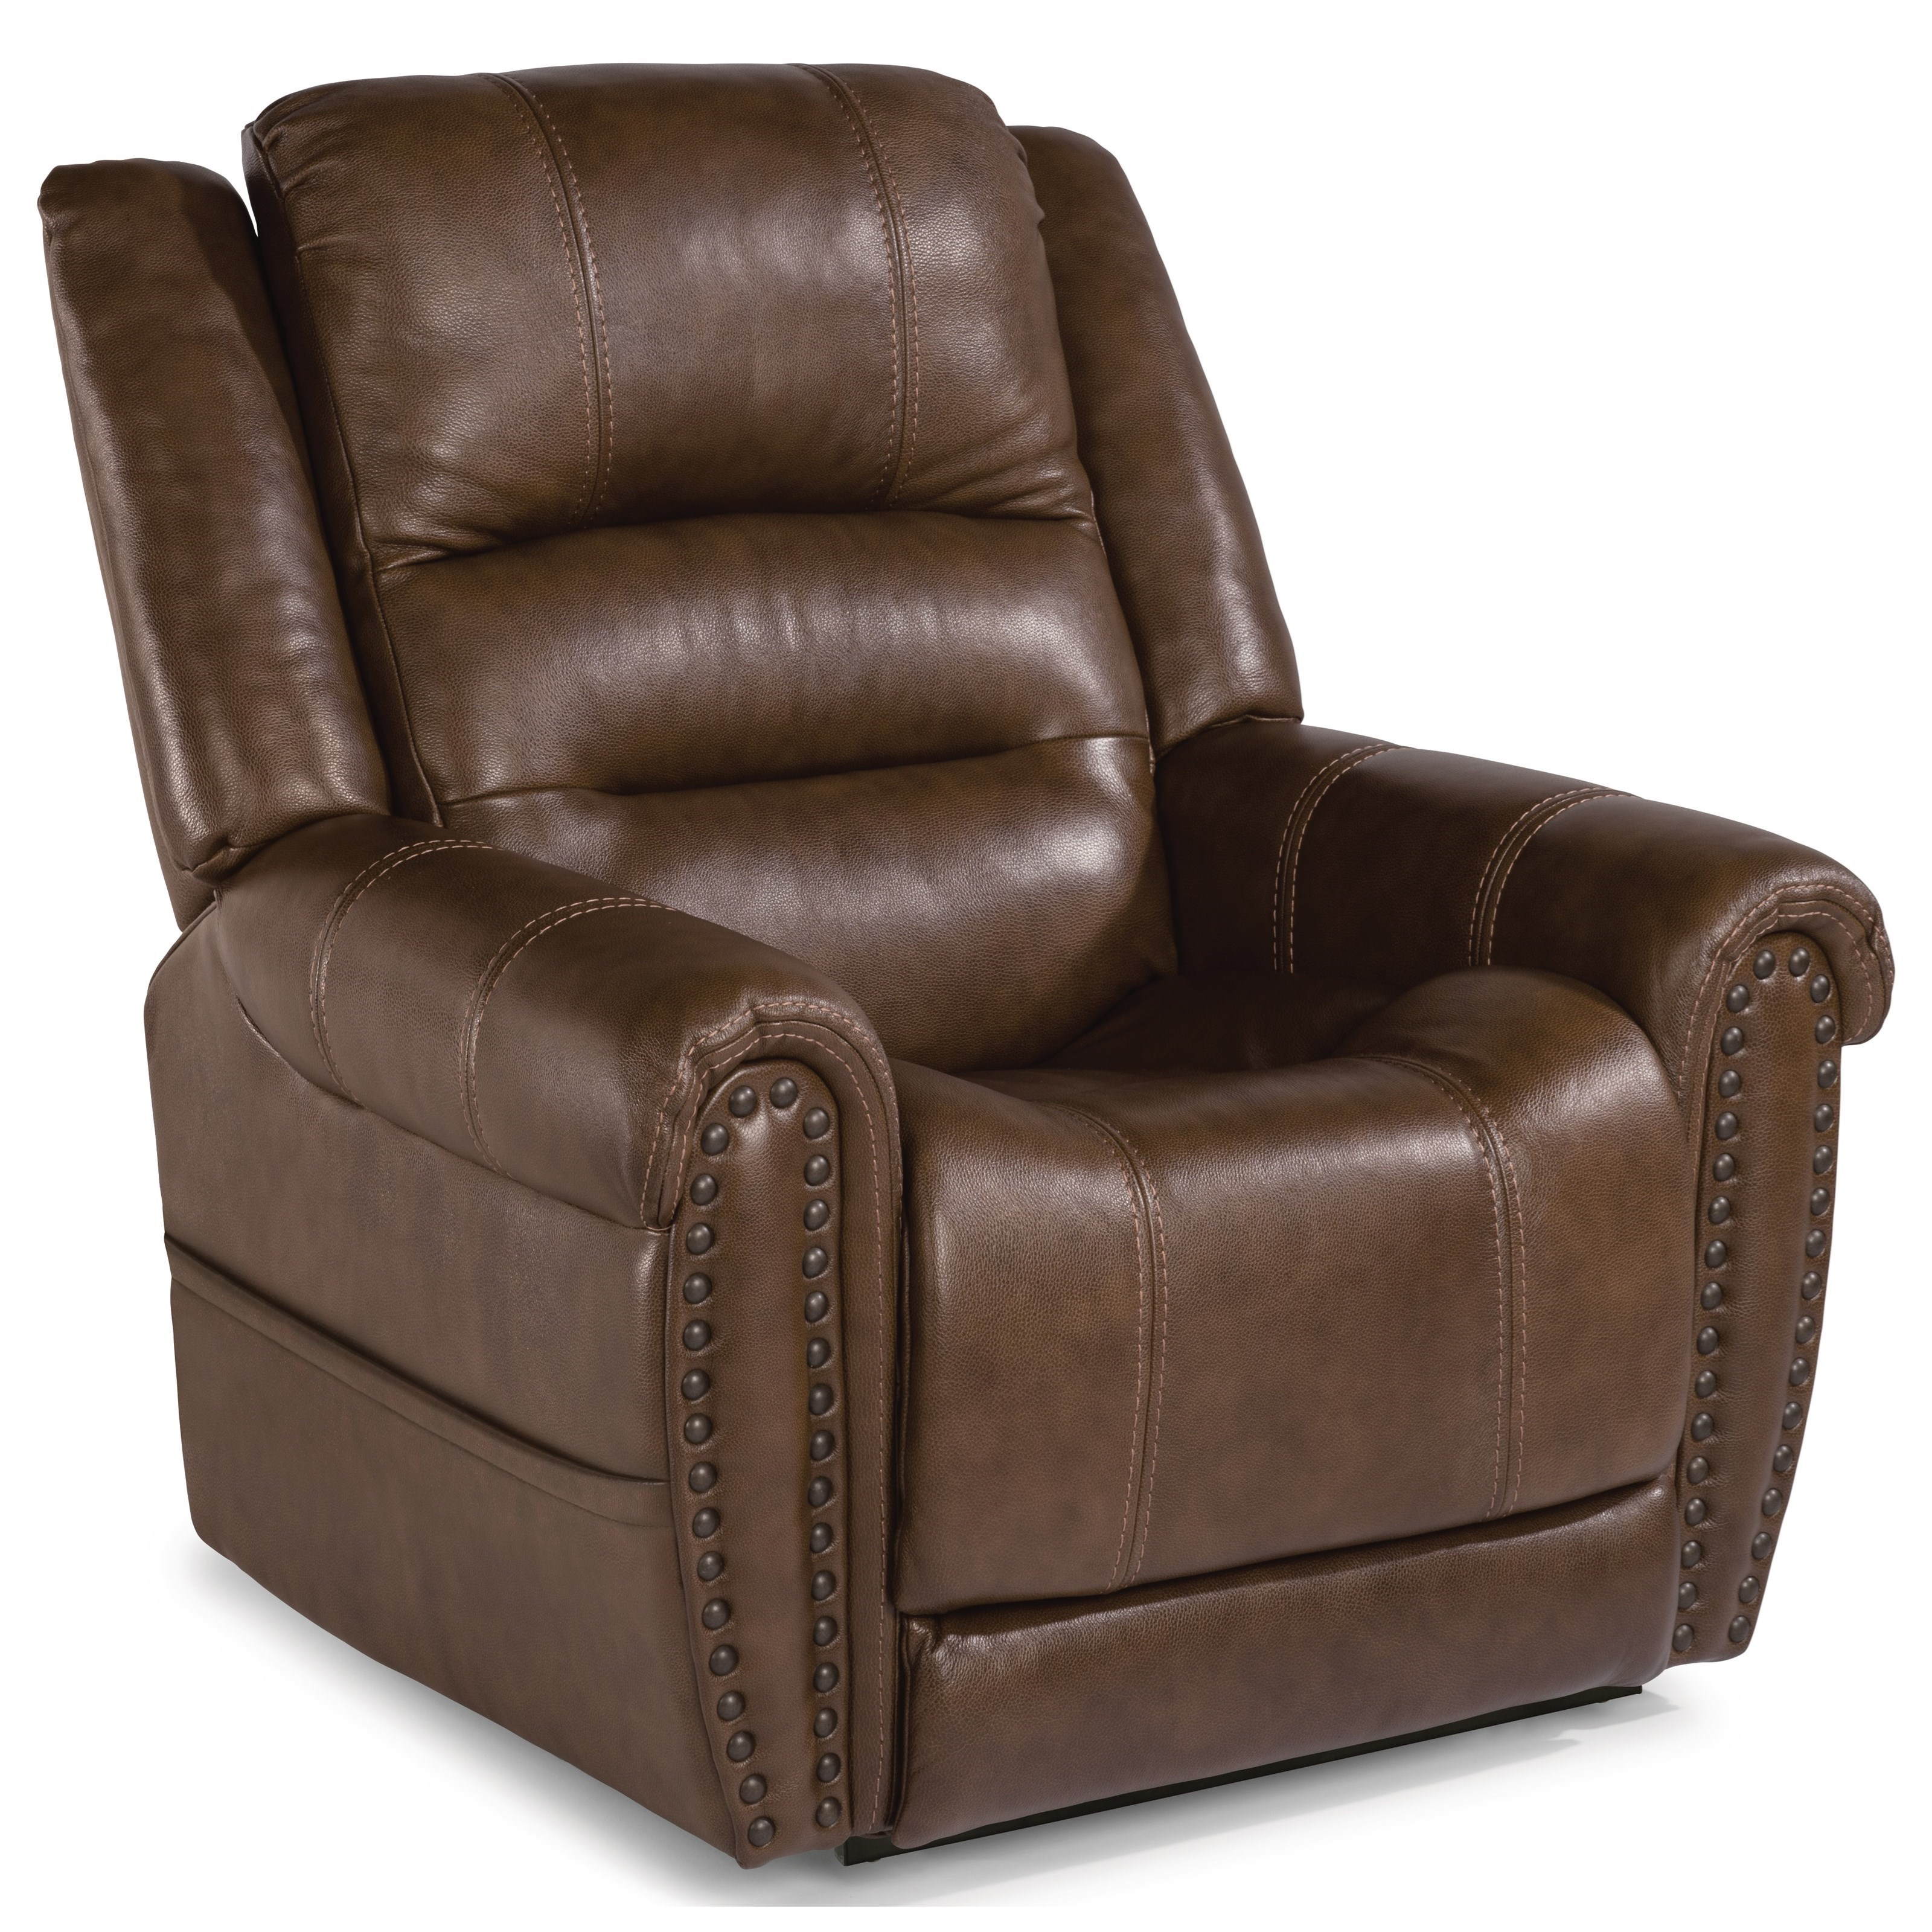 Latitudes - Oscar Power Lift Recliner by Flexsteel at Furniture and ApplianceMart